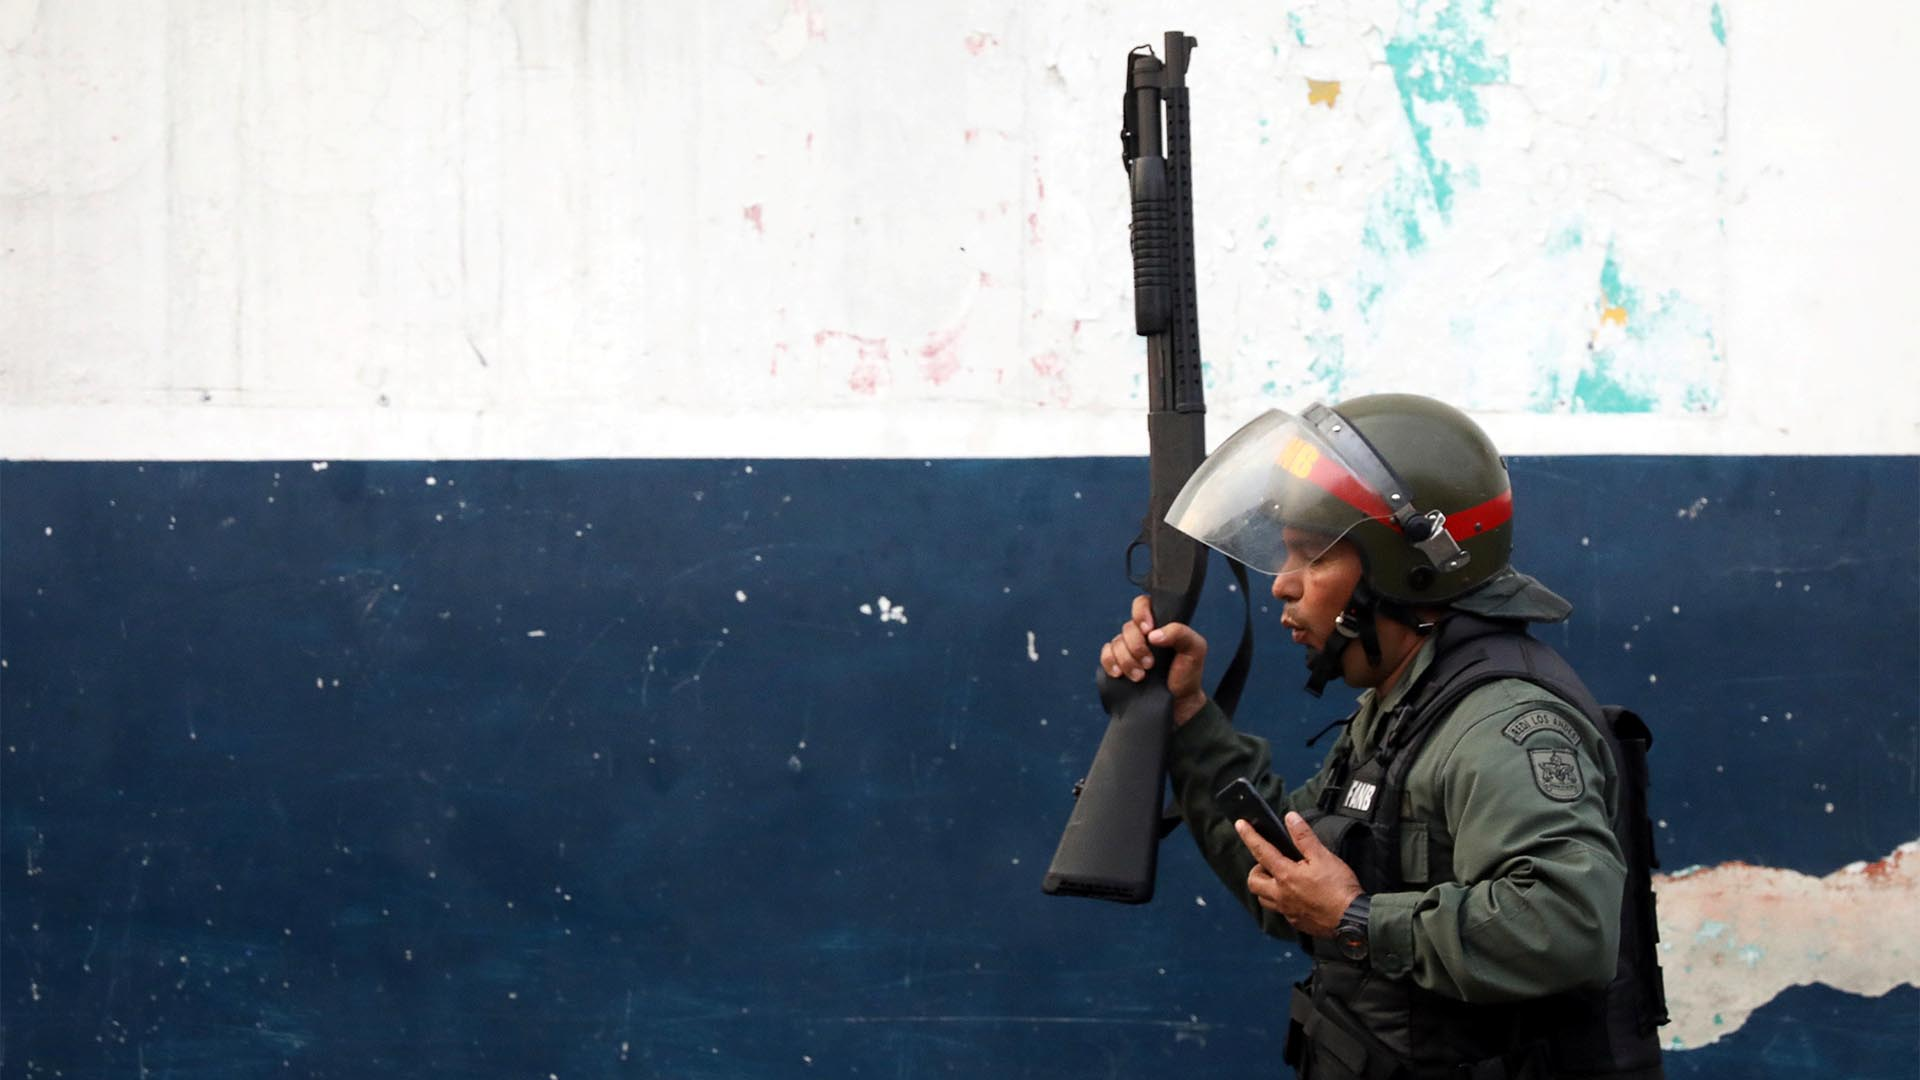 A member of Venezuela's security forces looks on while clashing with activists in Udena